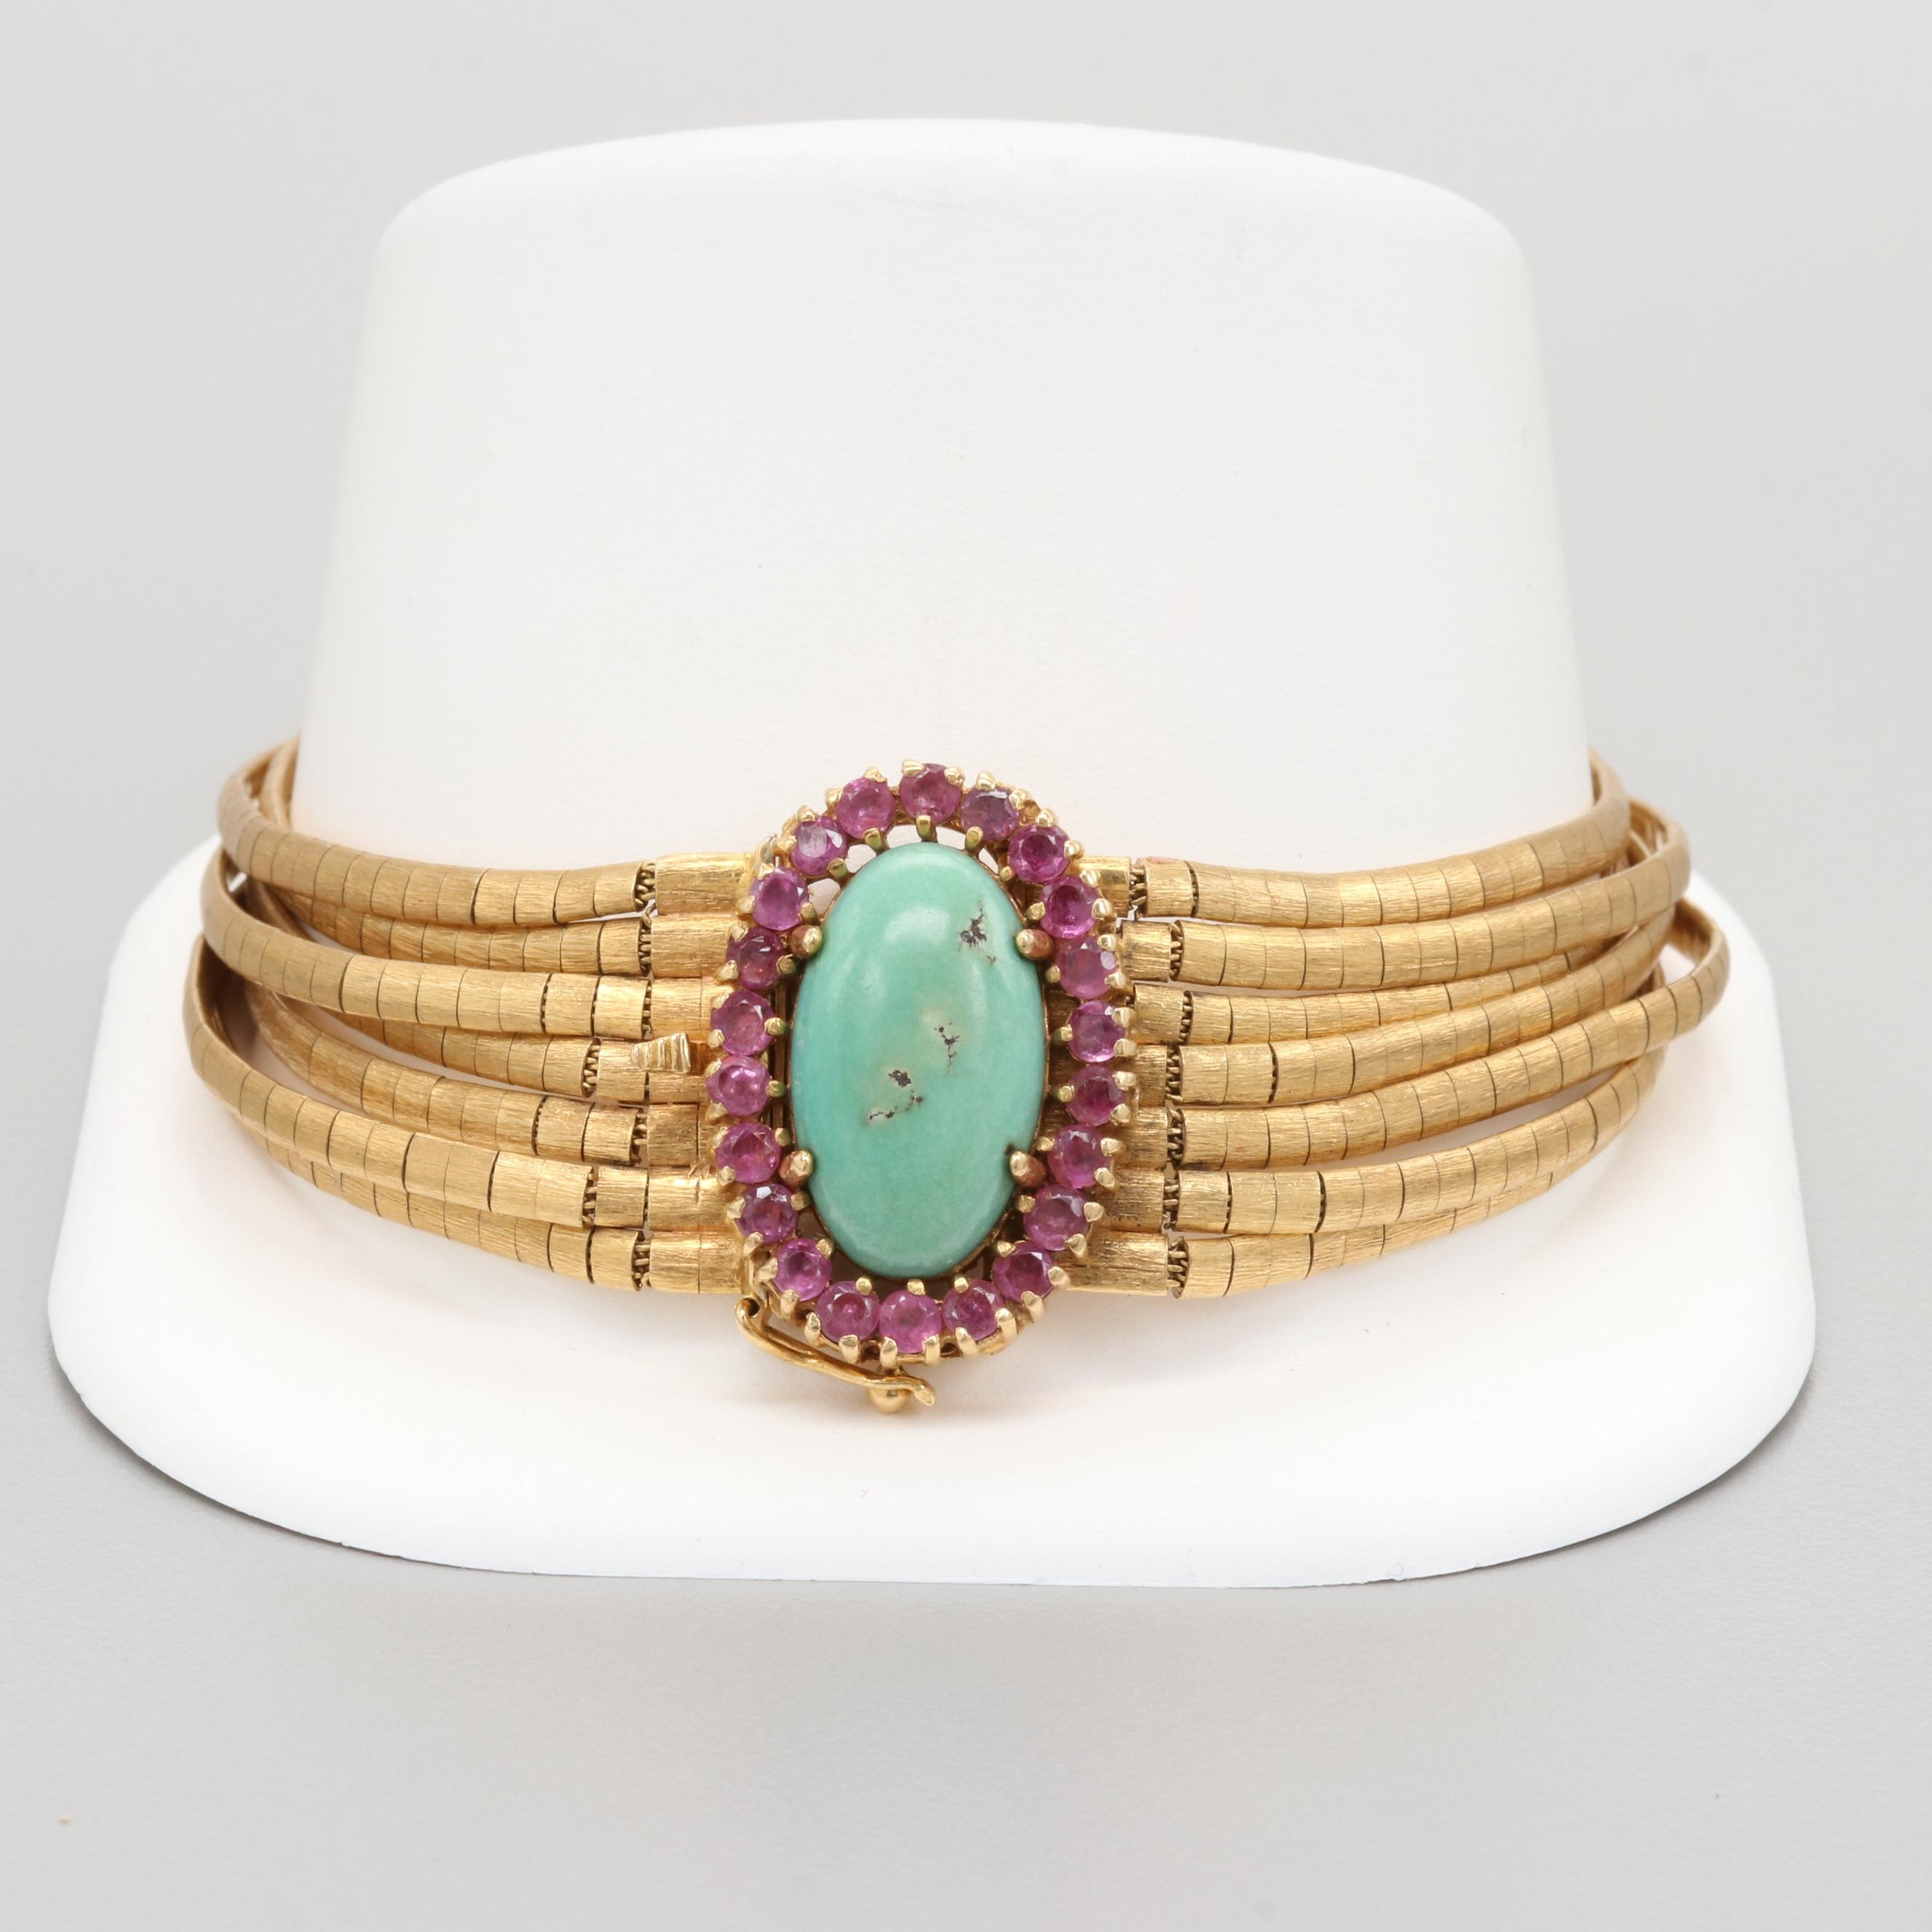 18K Yellow Gold Turquoise and Ruby Bracelet